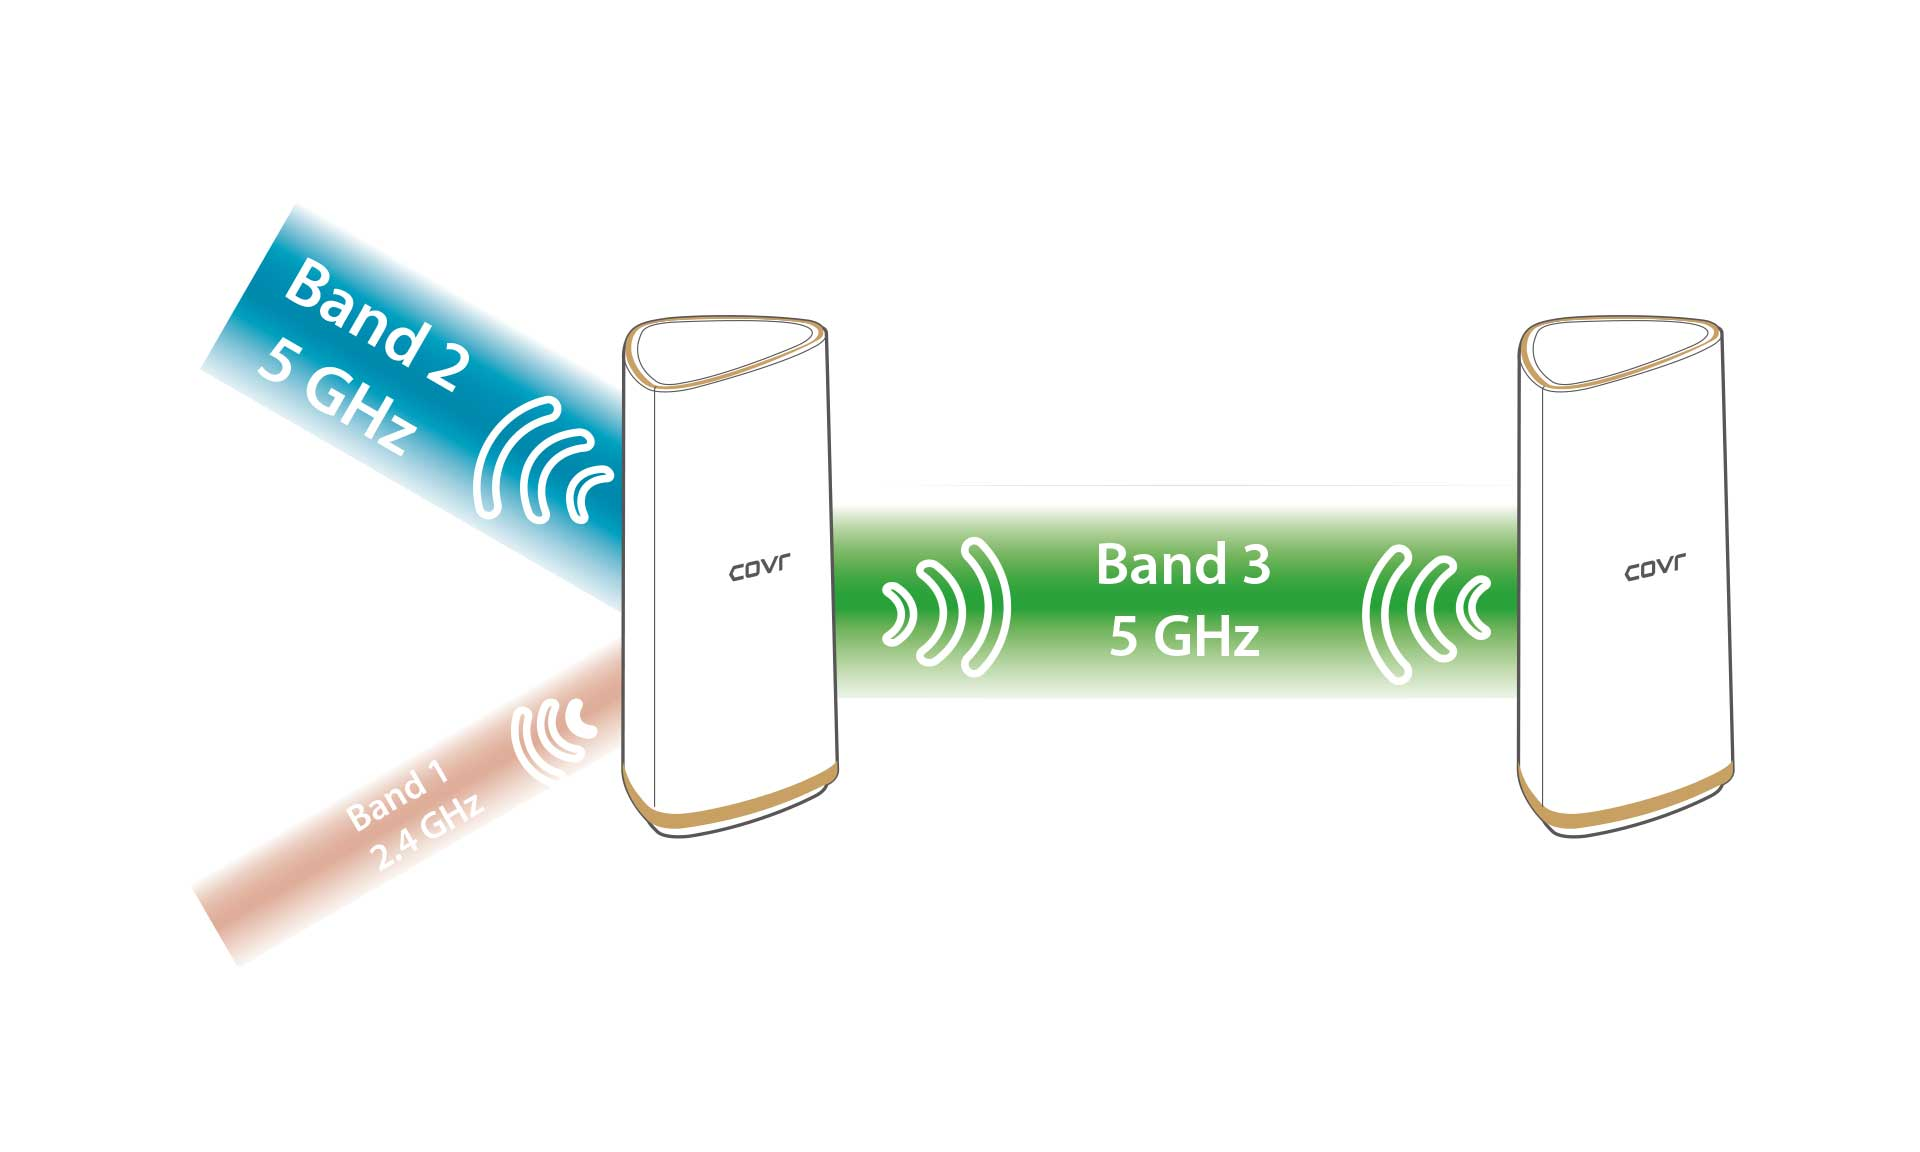 The COVR-2202 AC2200 Tri Band Whole Home Mesh Wi-Fi System has a third separate band just for backhaul, leaving the other two bands unrestricted for connecting to your devices.